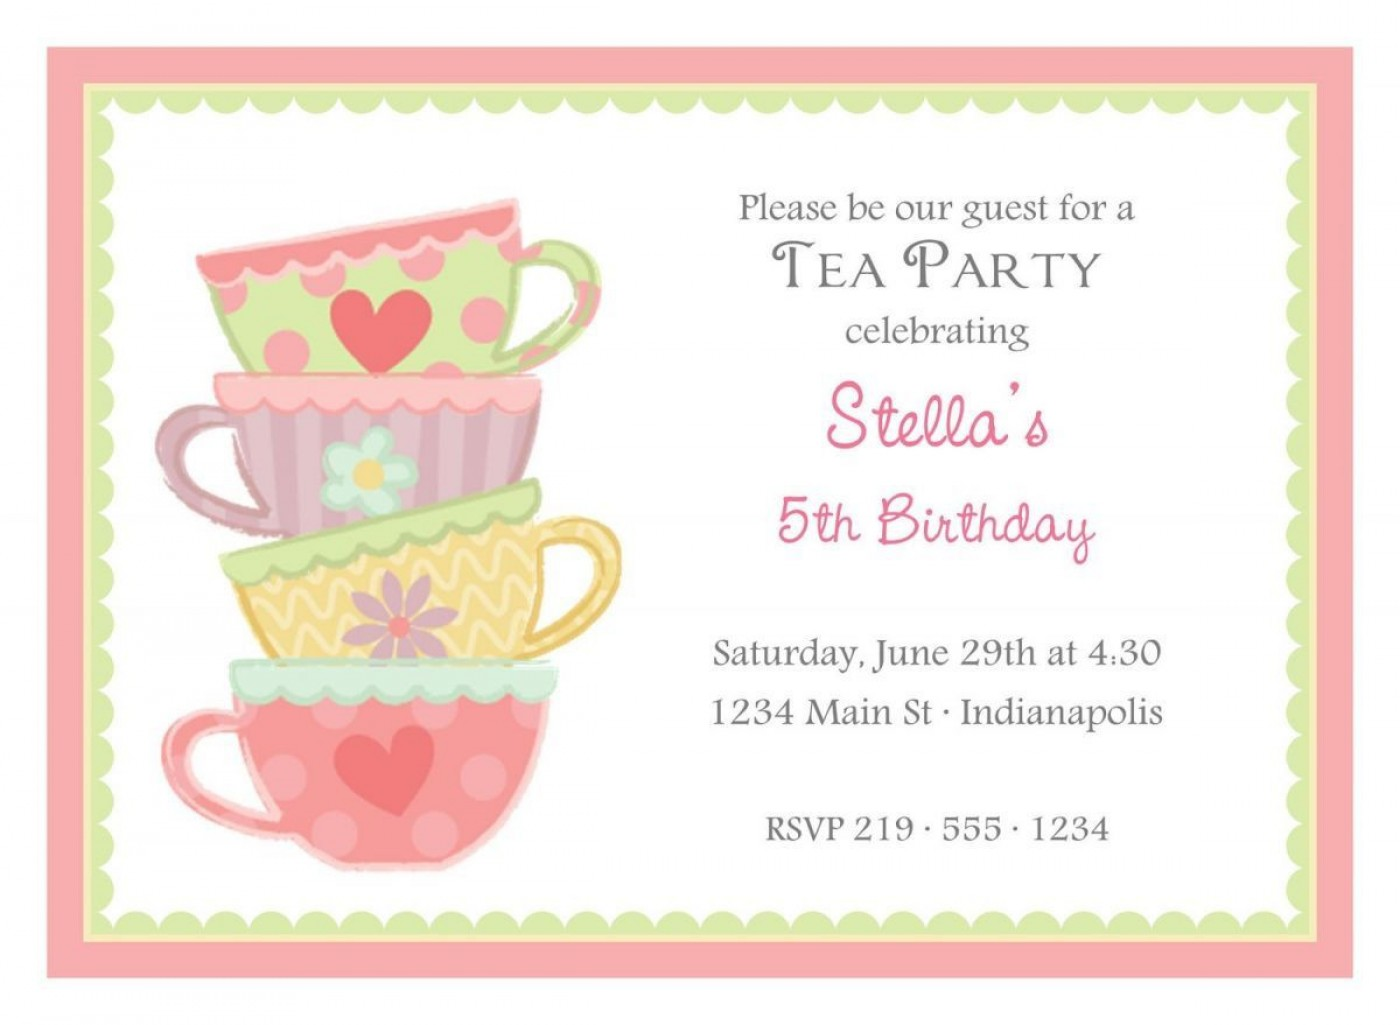 003 Formidable Tea Party Invitation Template Image  Vintage Free Editable Card Pdf1400